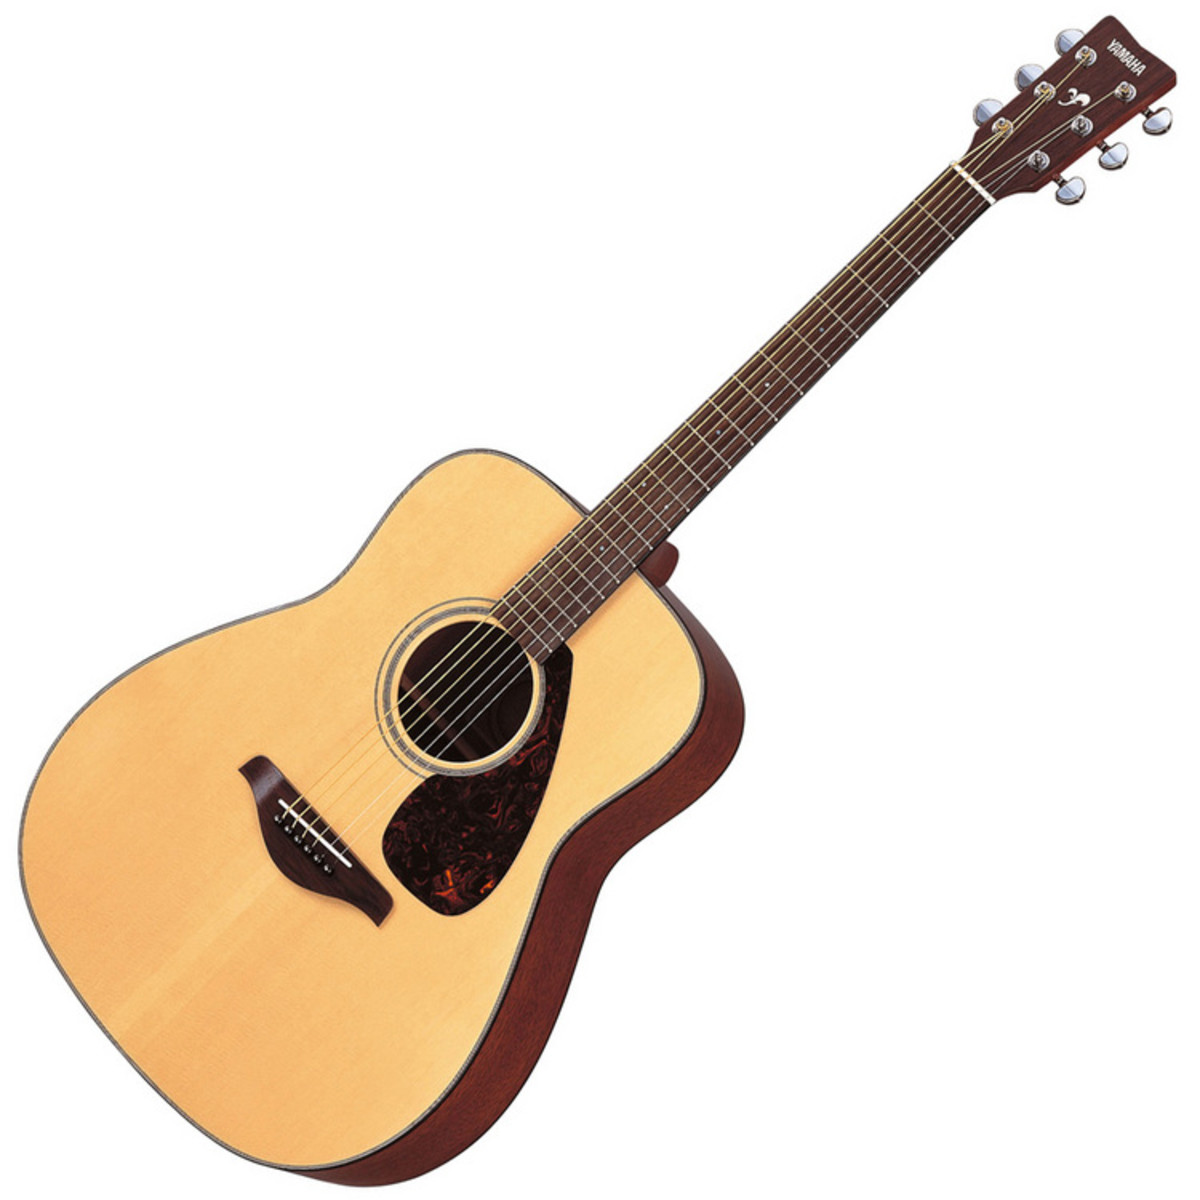 Yamaha fg700ms acoustic guitar matt gloss nearly new at for Yamaha acoustic bass guitar